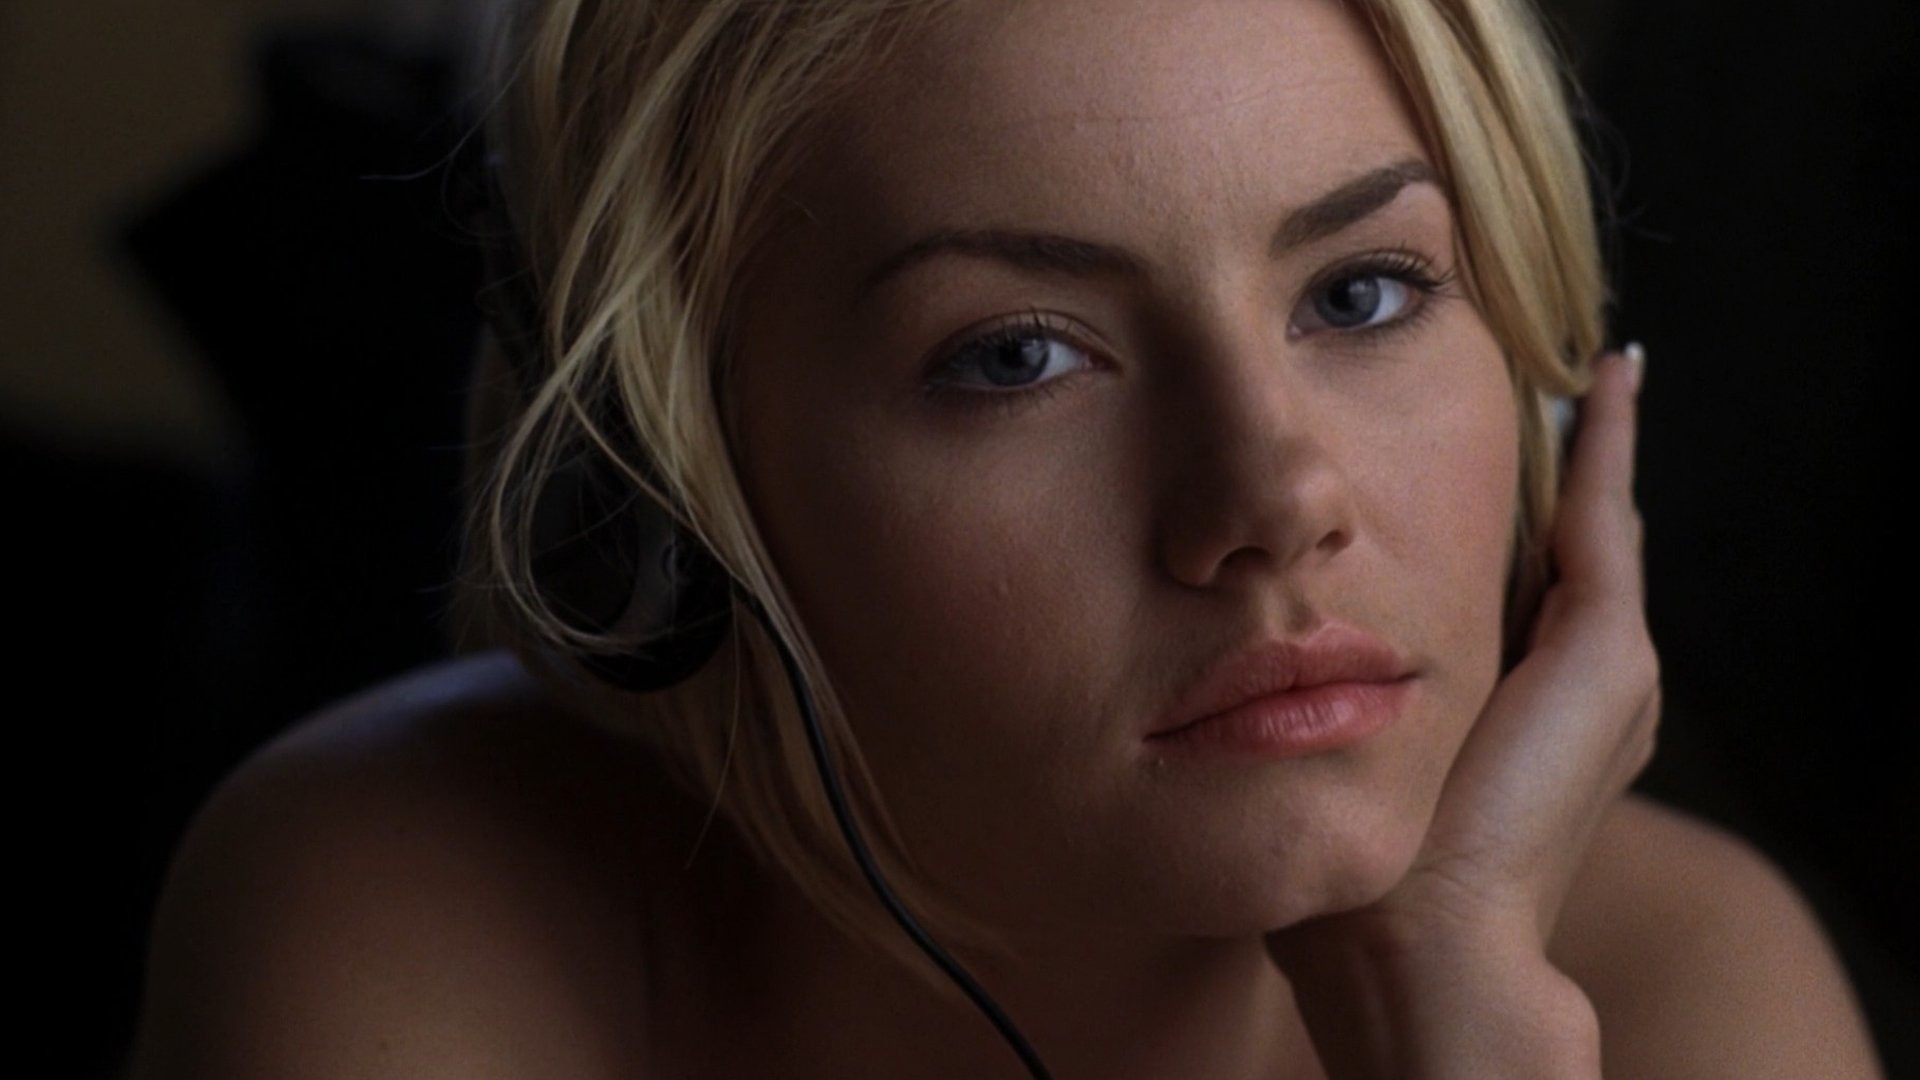 Wallpapers Of Elisha Cuthbert 71 Background Pictures